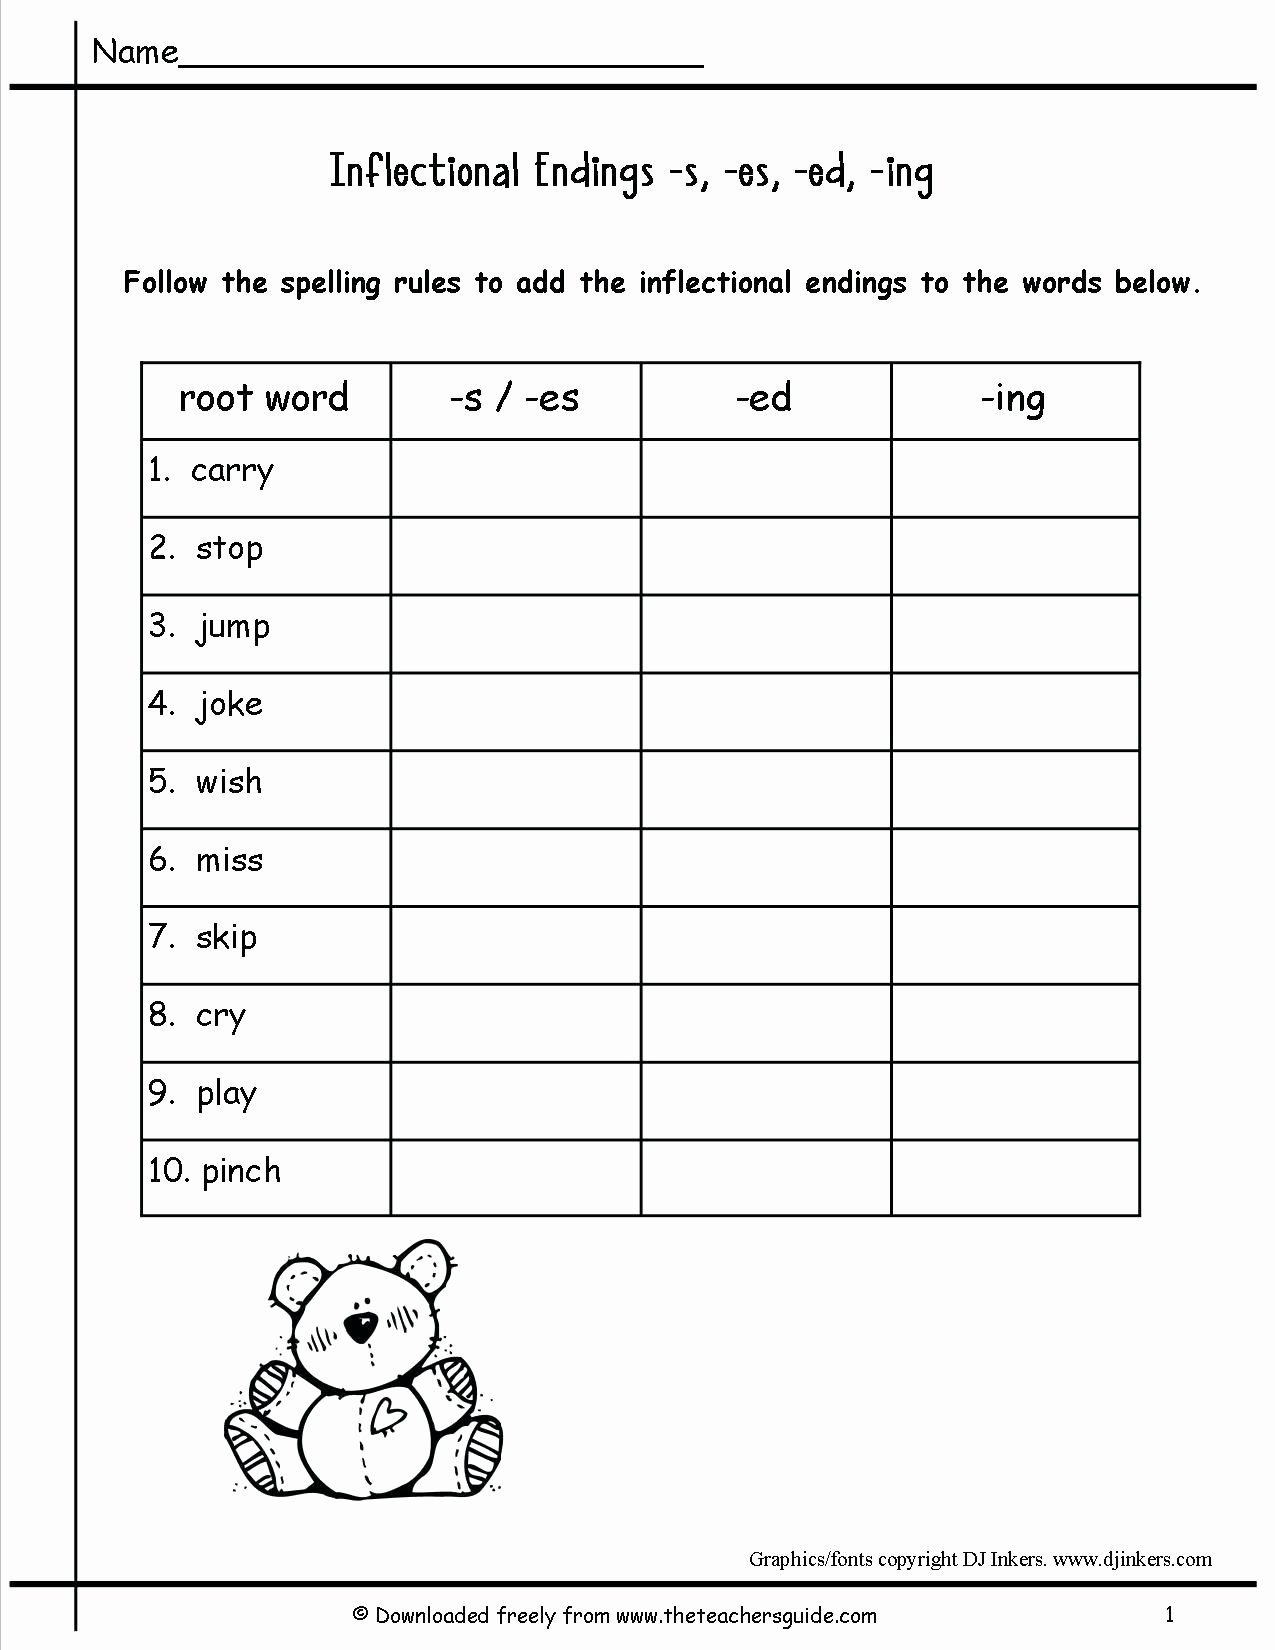 Inflectional Endings Worksheets 2nd Grade top Ed Ing Ending Worksheets